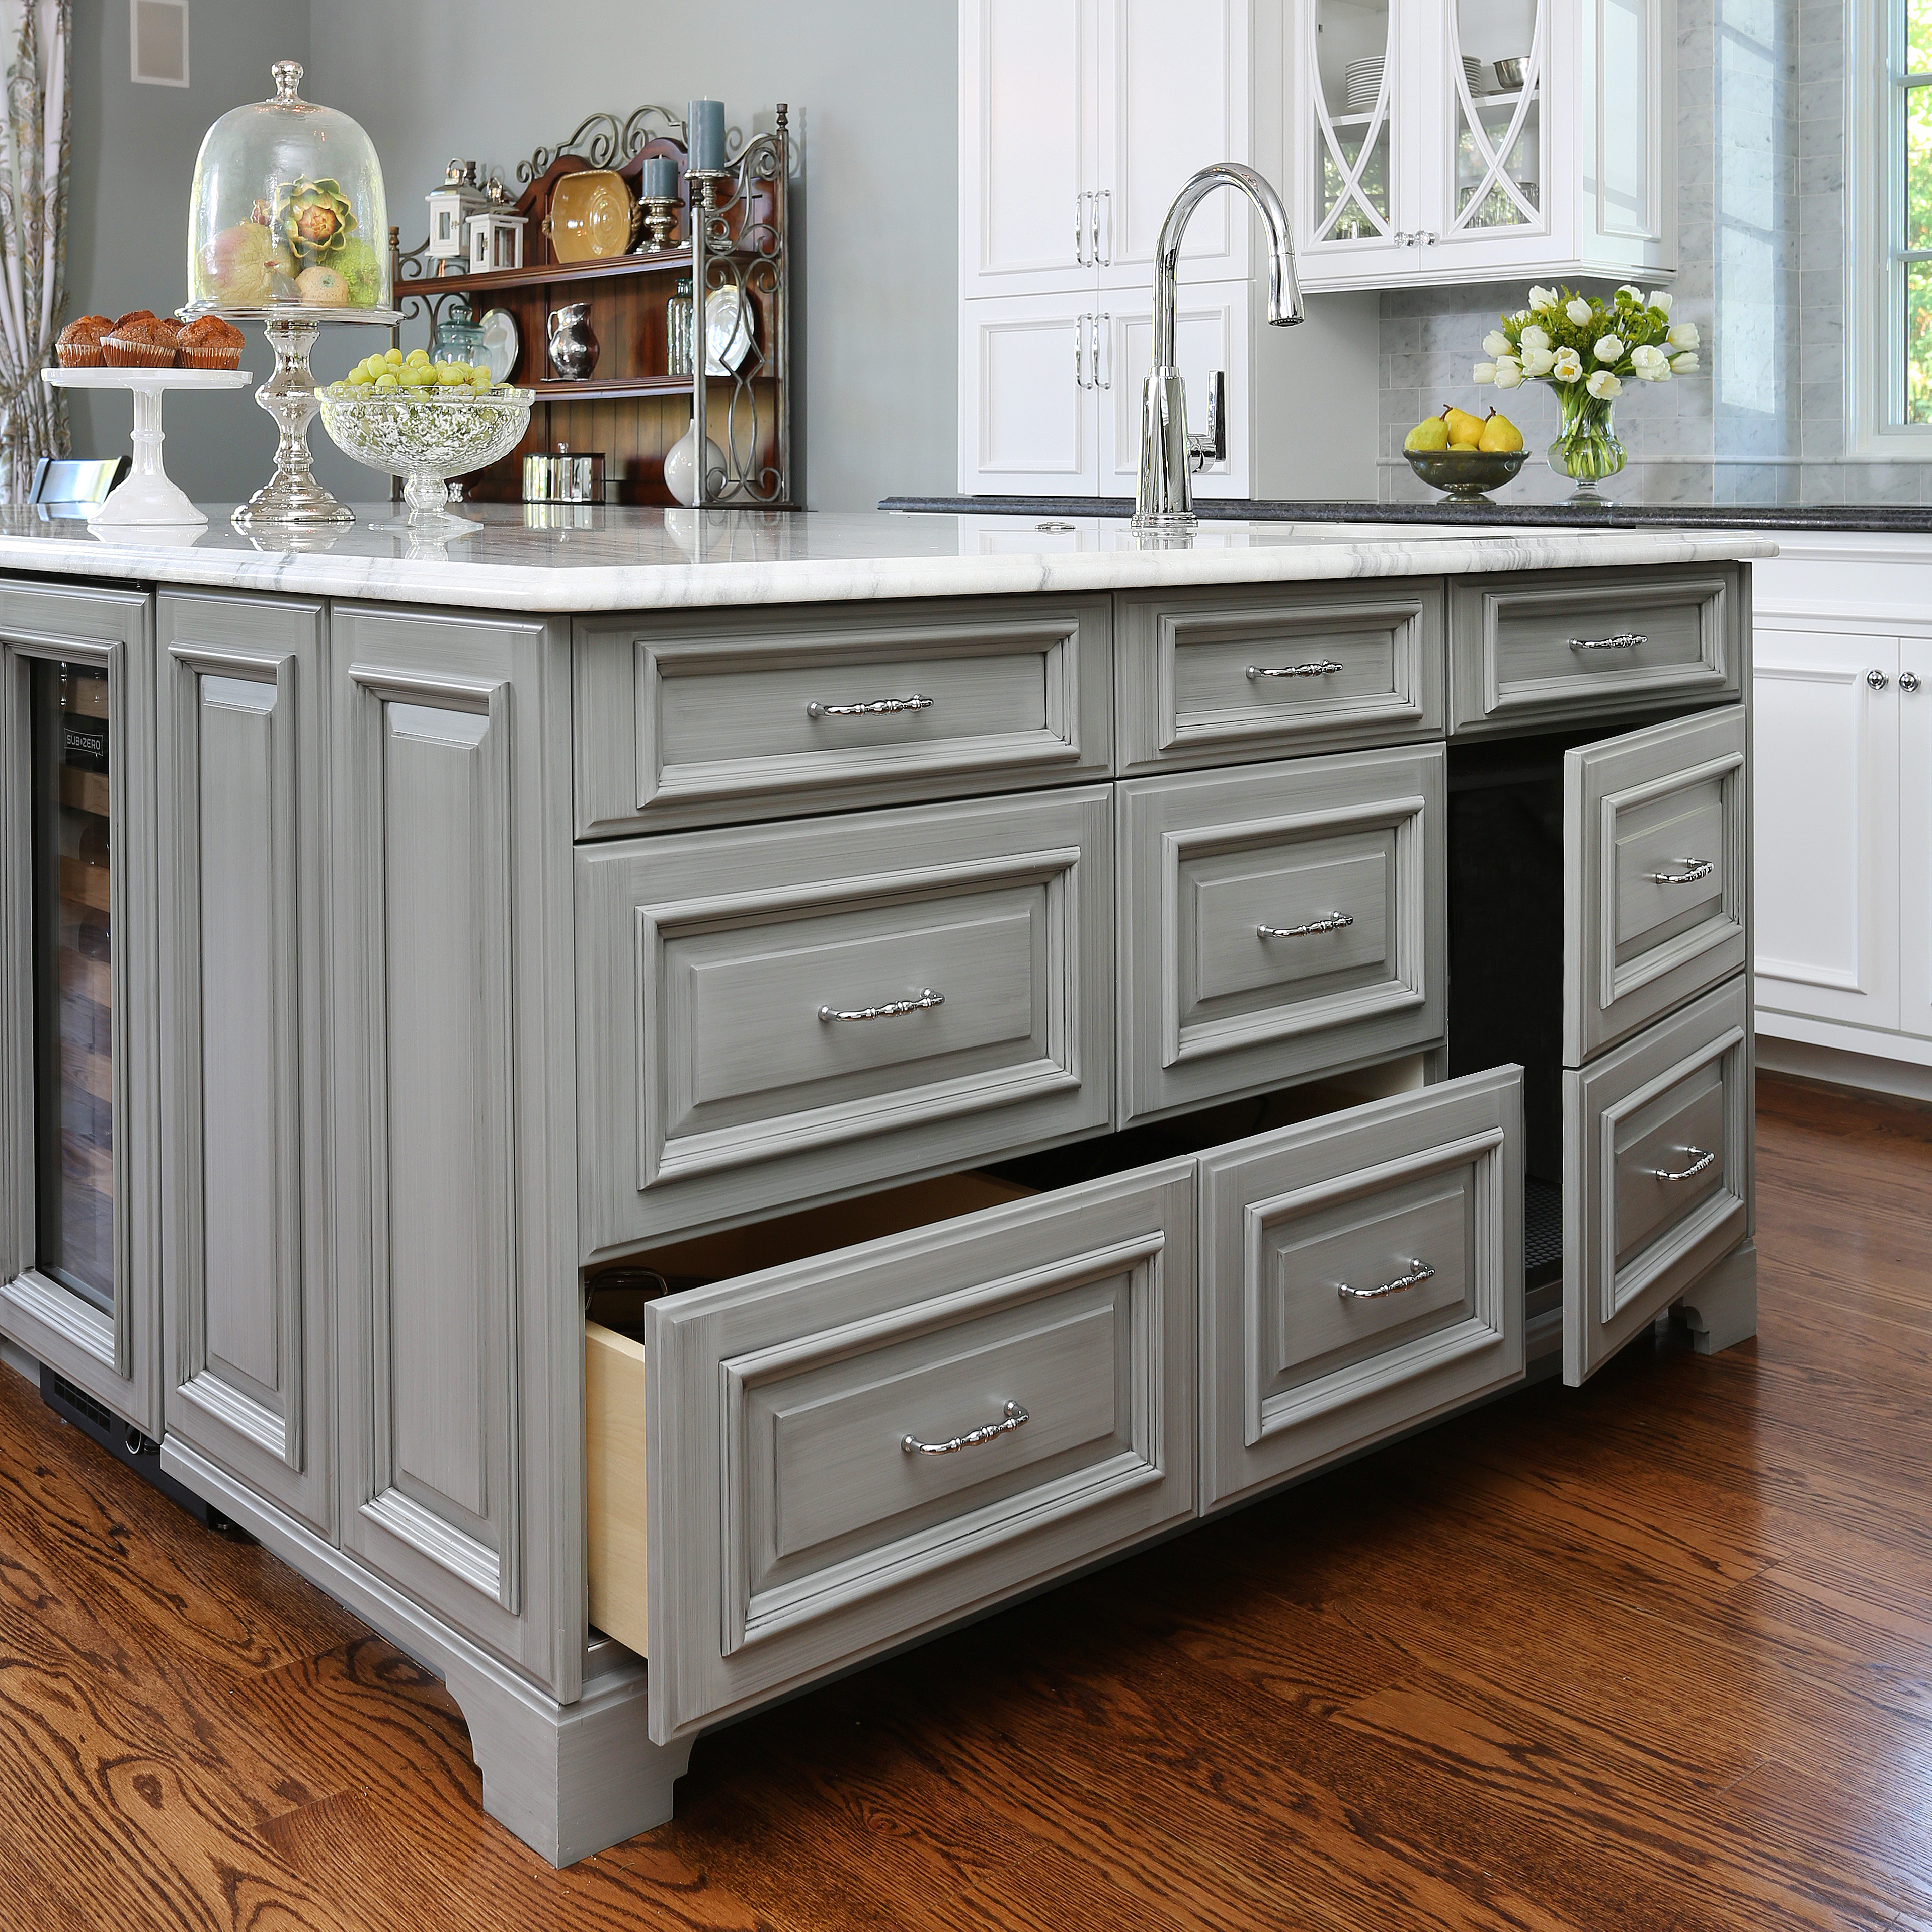 Add Dimension And Detail To Your Kitchen Cabinetry With A Specialty Glaze Normandy Remodeling